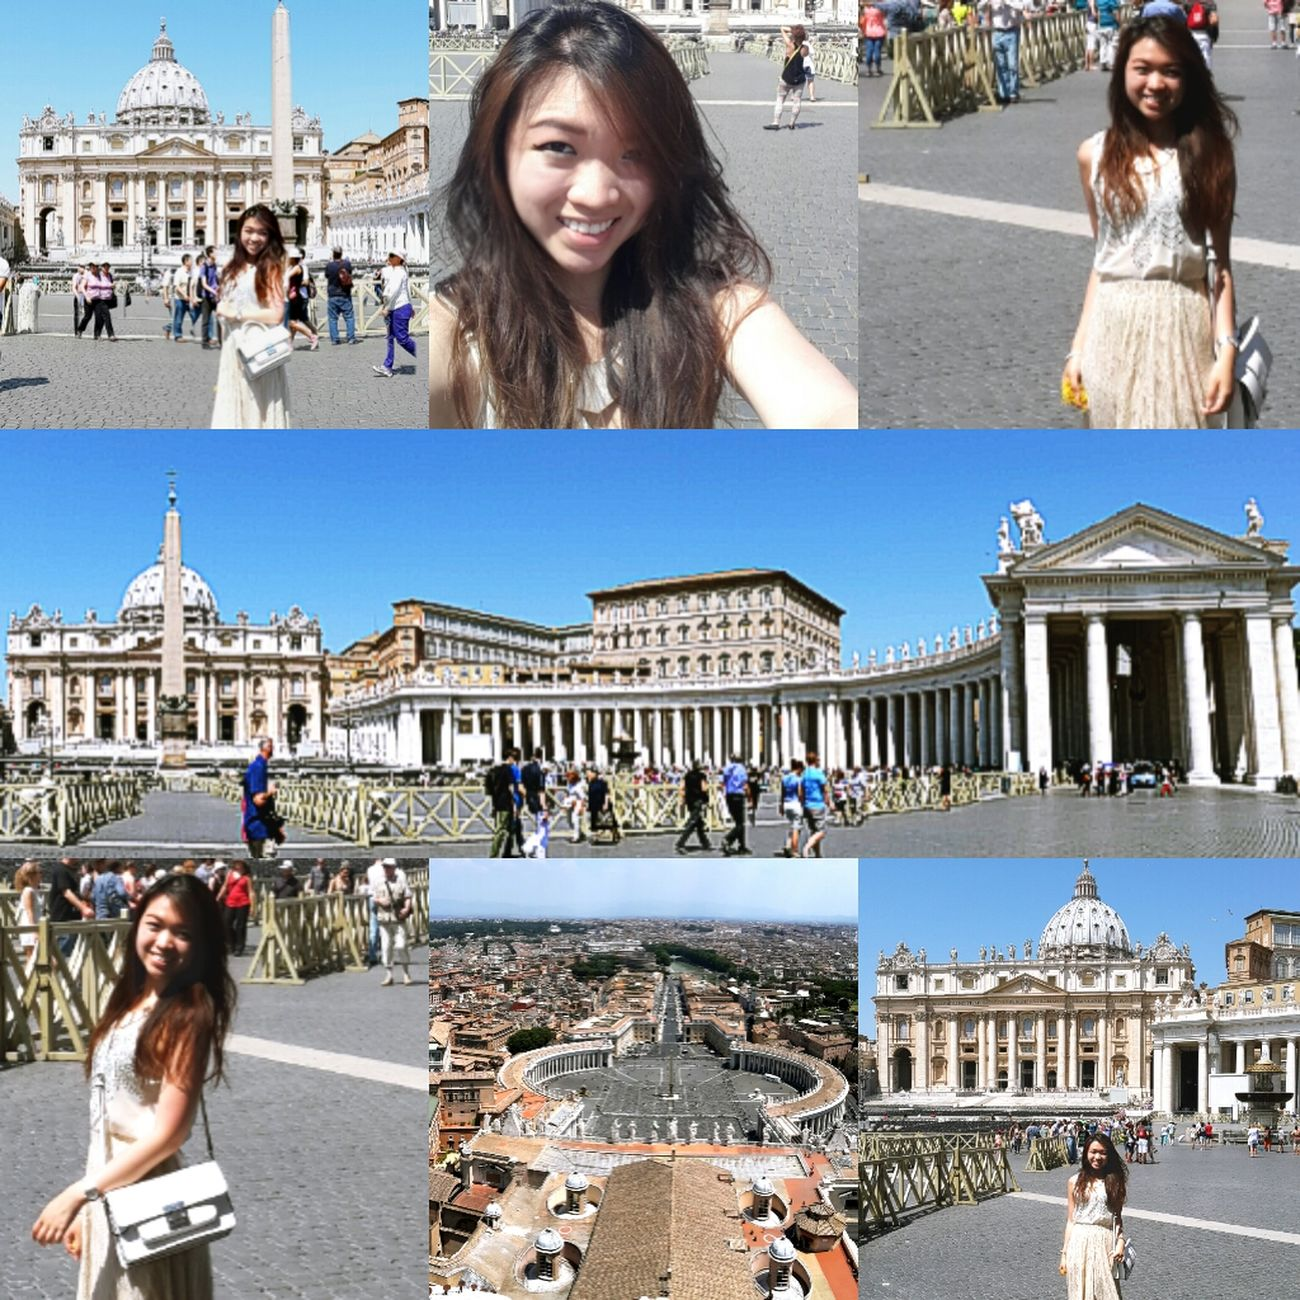 Enjoying Life Vatican Tourism Gorgeous